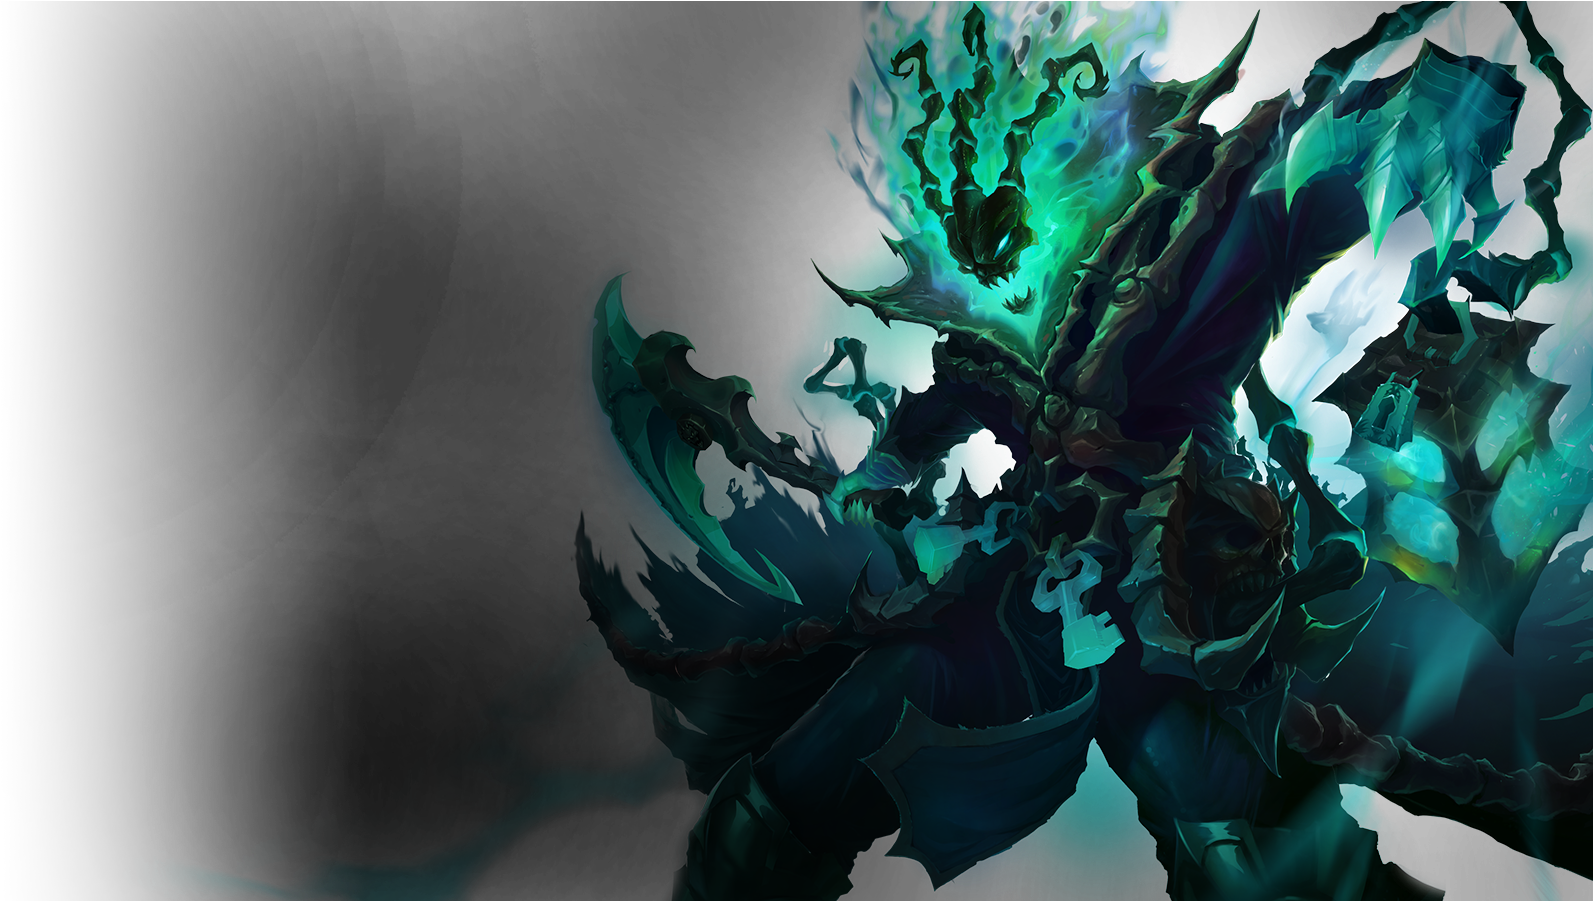 Download League Of Legends Wallpapers Thresh Png Image With No